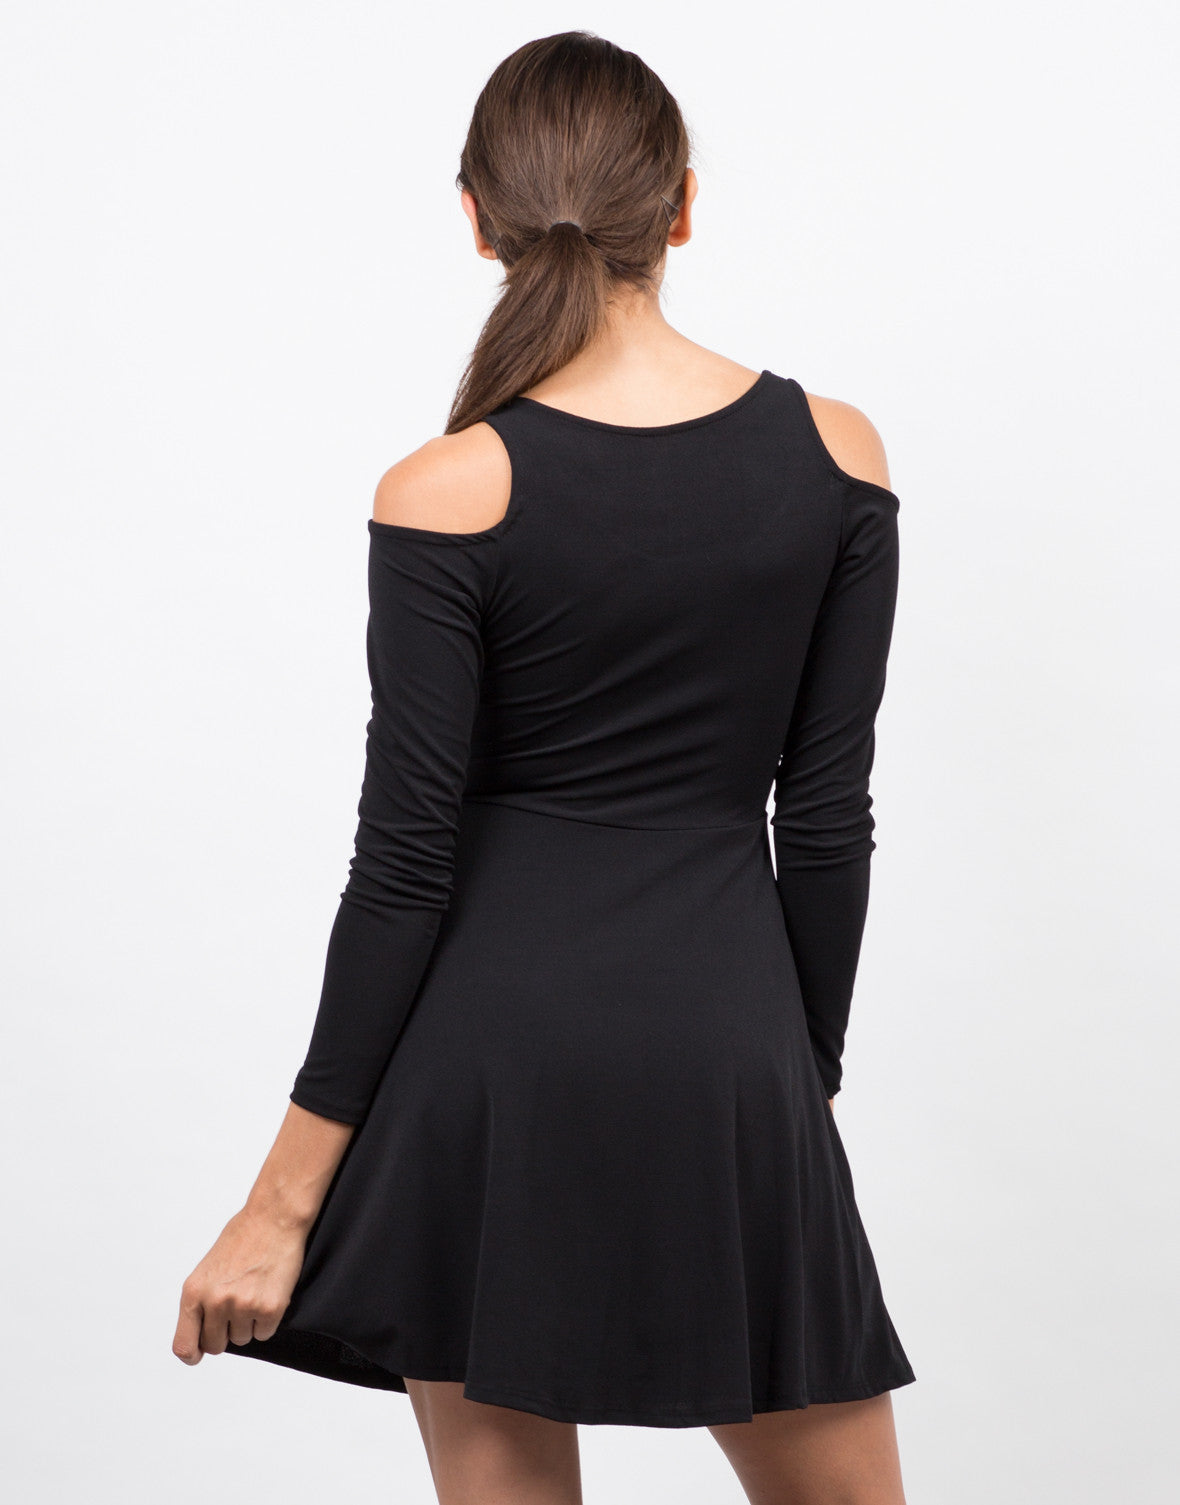 Back View of Cold Shoulder Long Sleeve Mini Dress